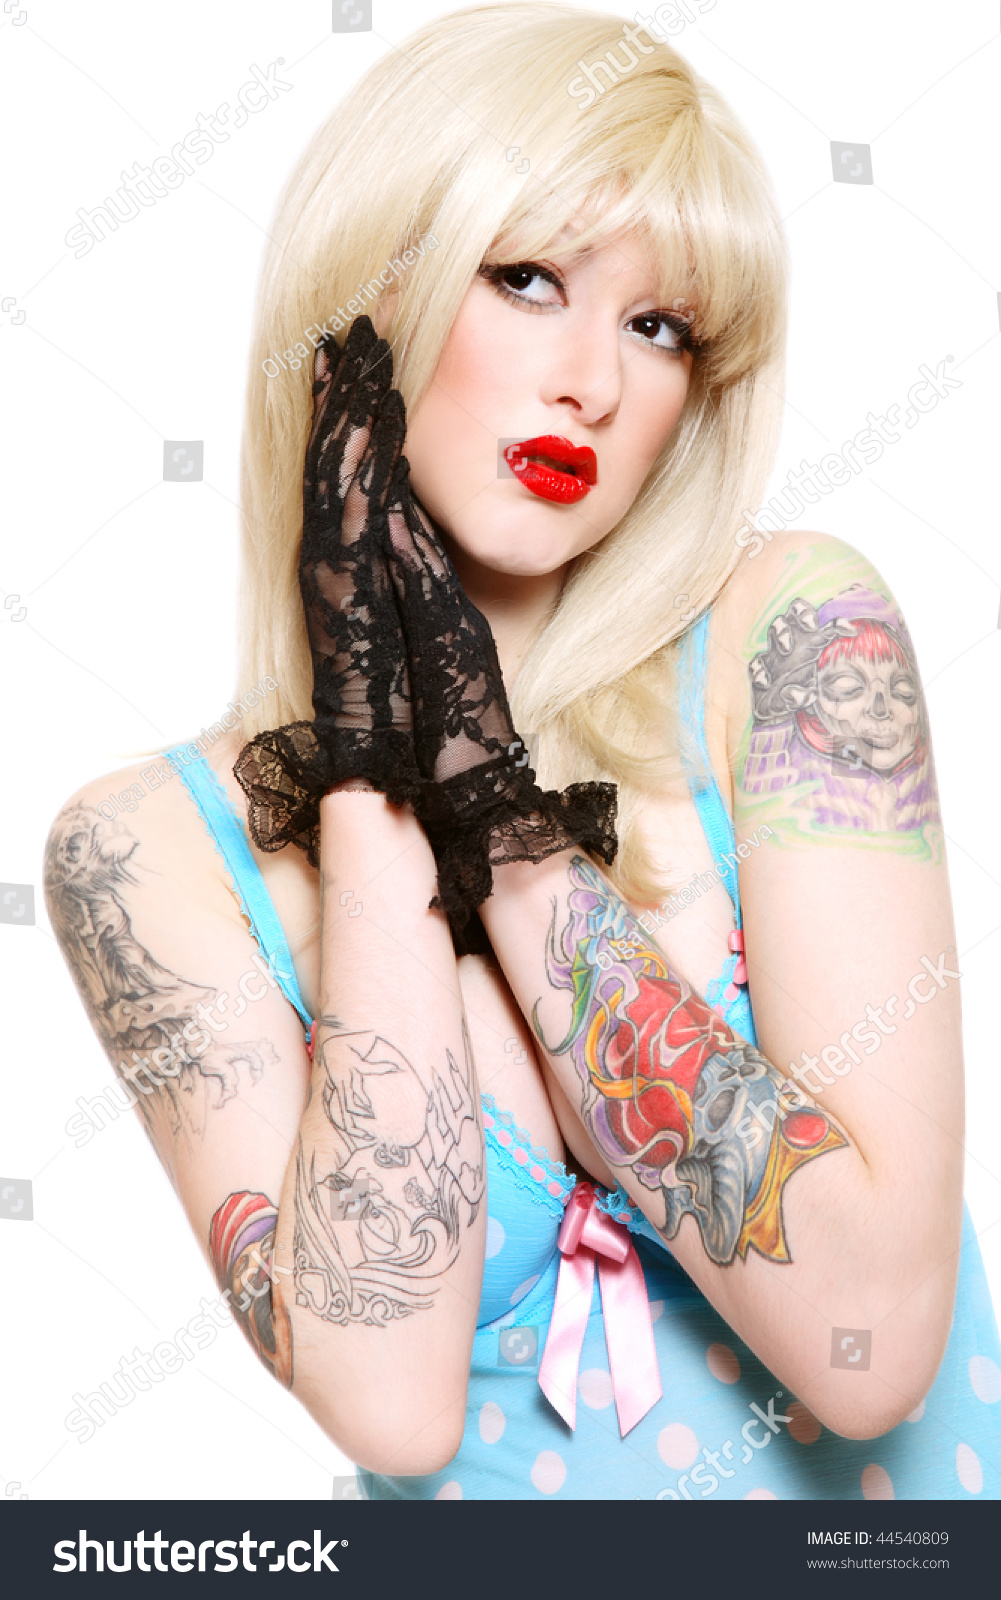 Blonde girl with tattoos